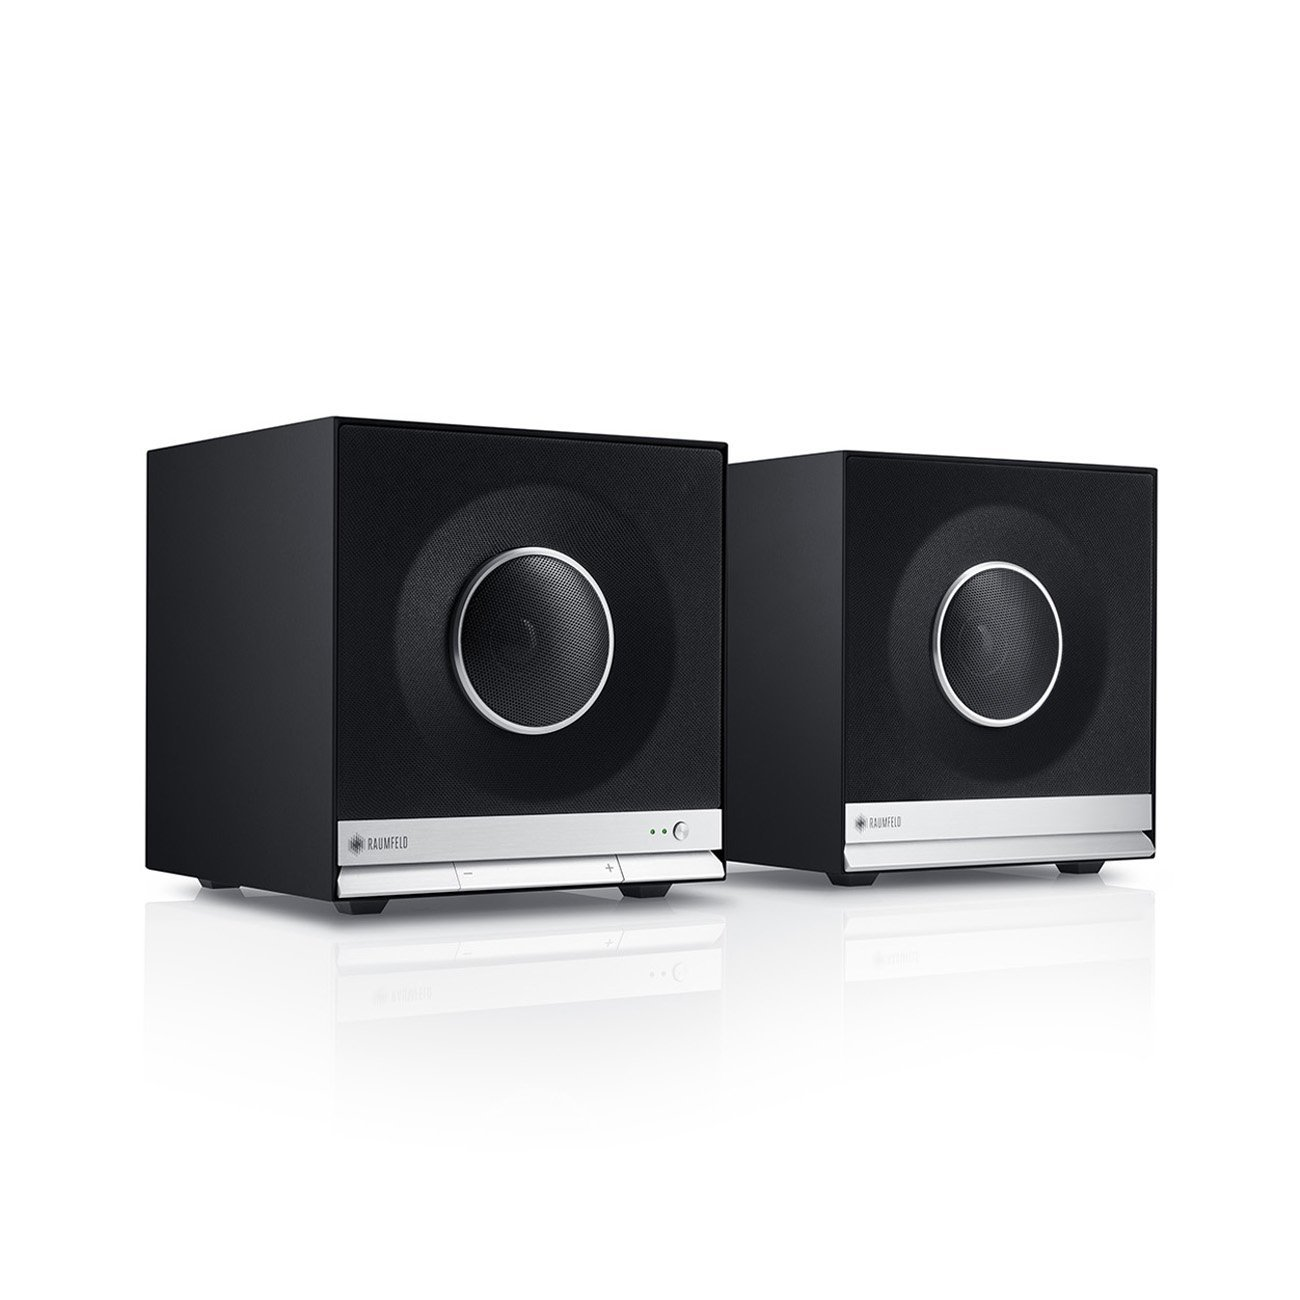 teufel raumfeld stereo cubes hifi lautsprecher streaming dlna usb multiroom ebay. Black Bedroom Furniture Sets. Home Design Ideas